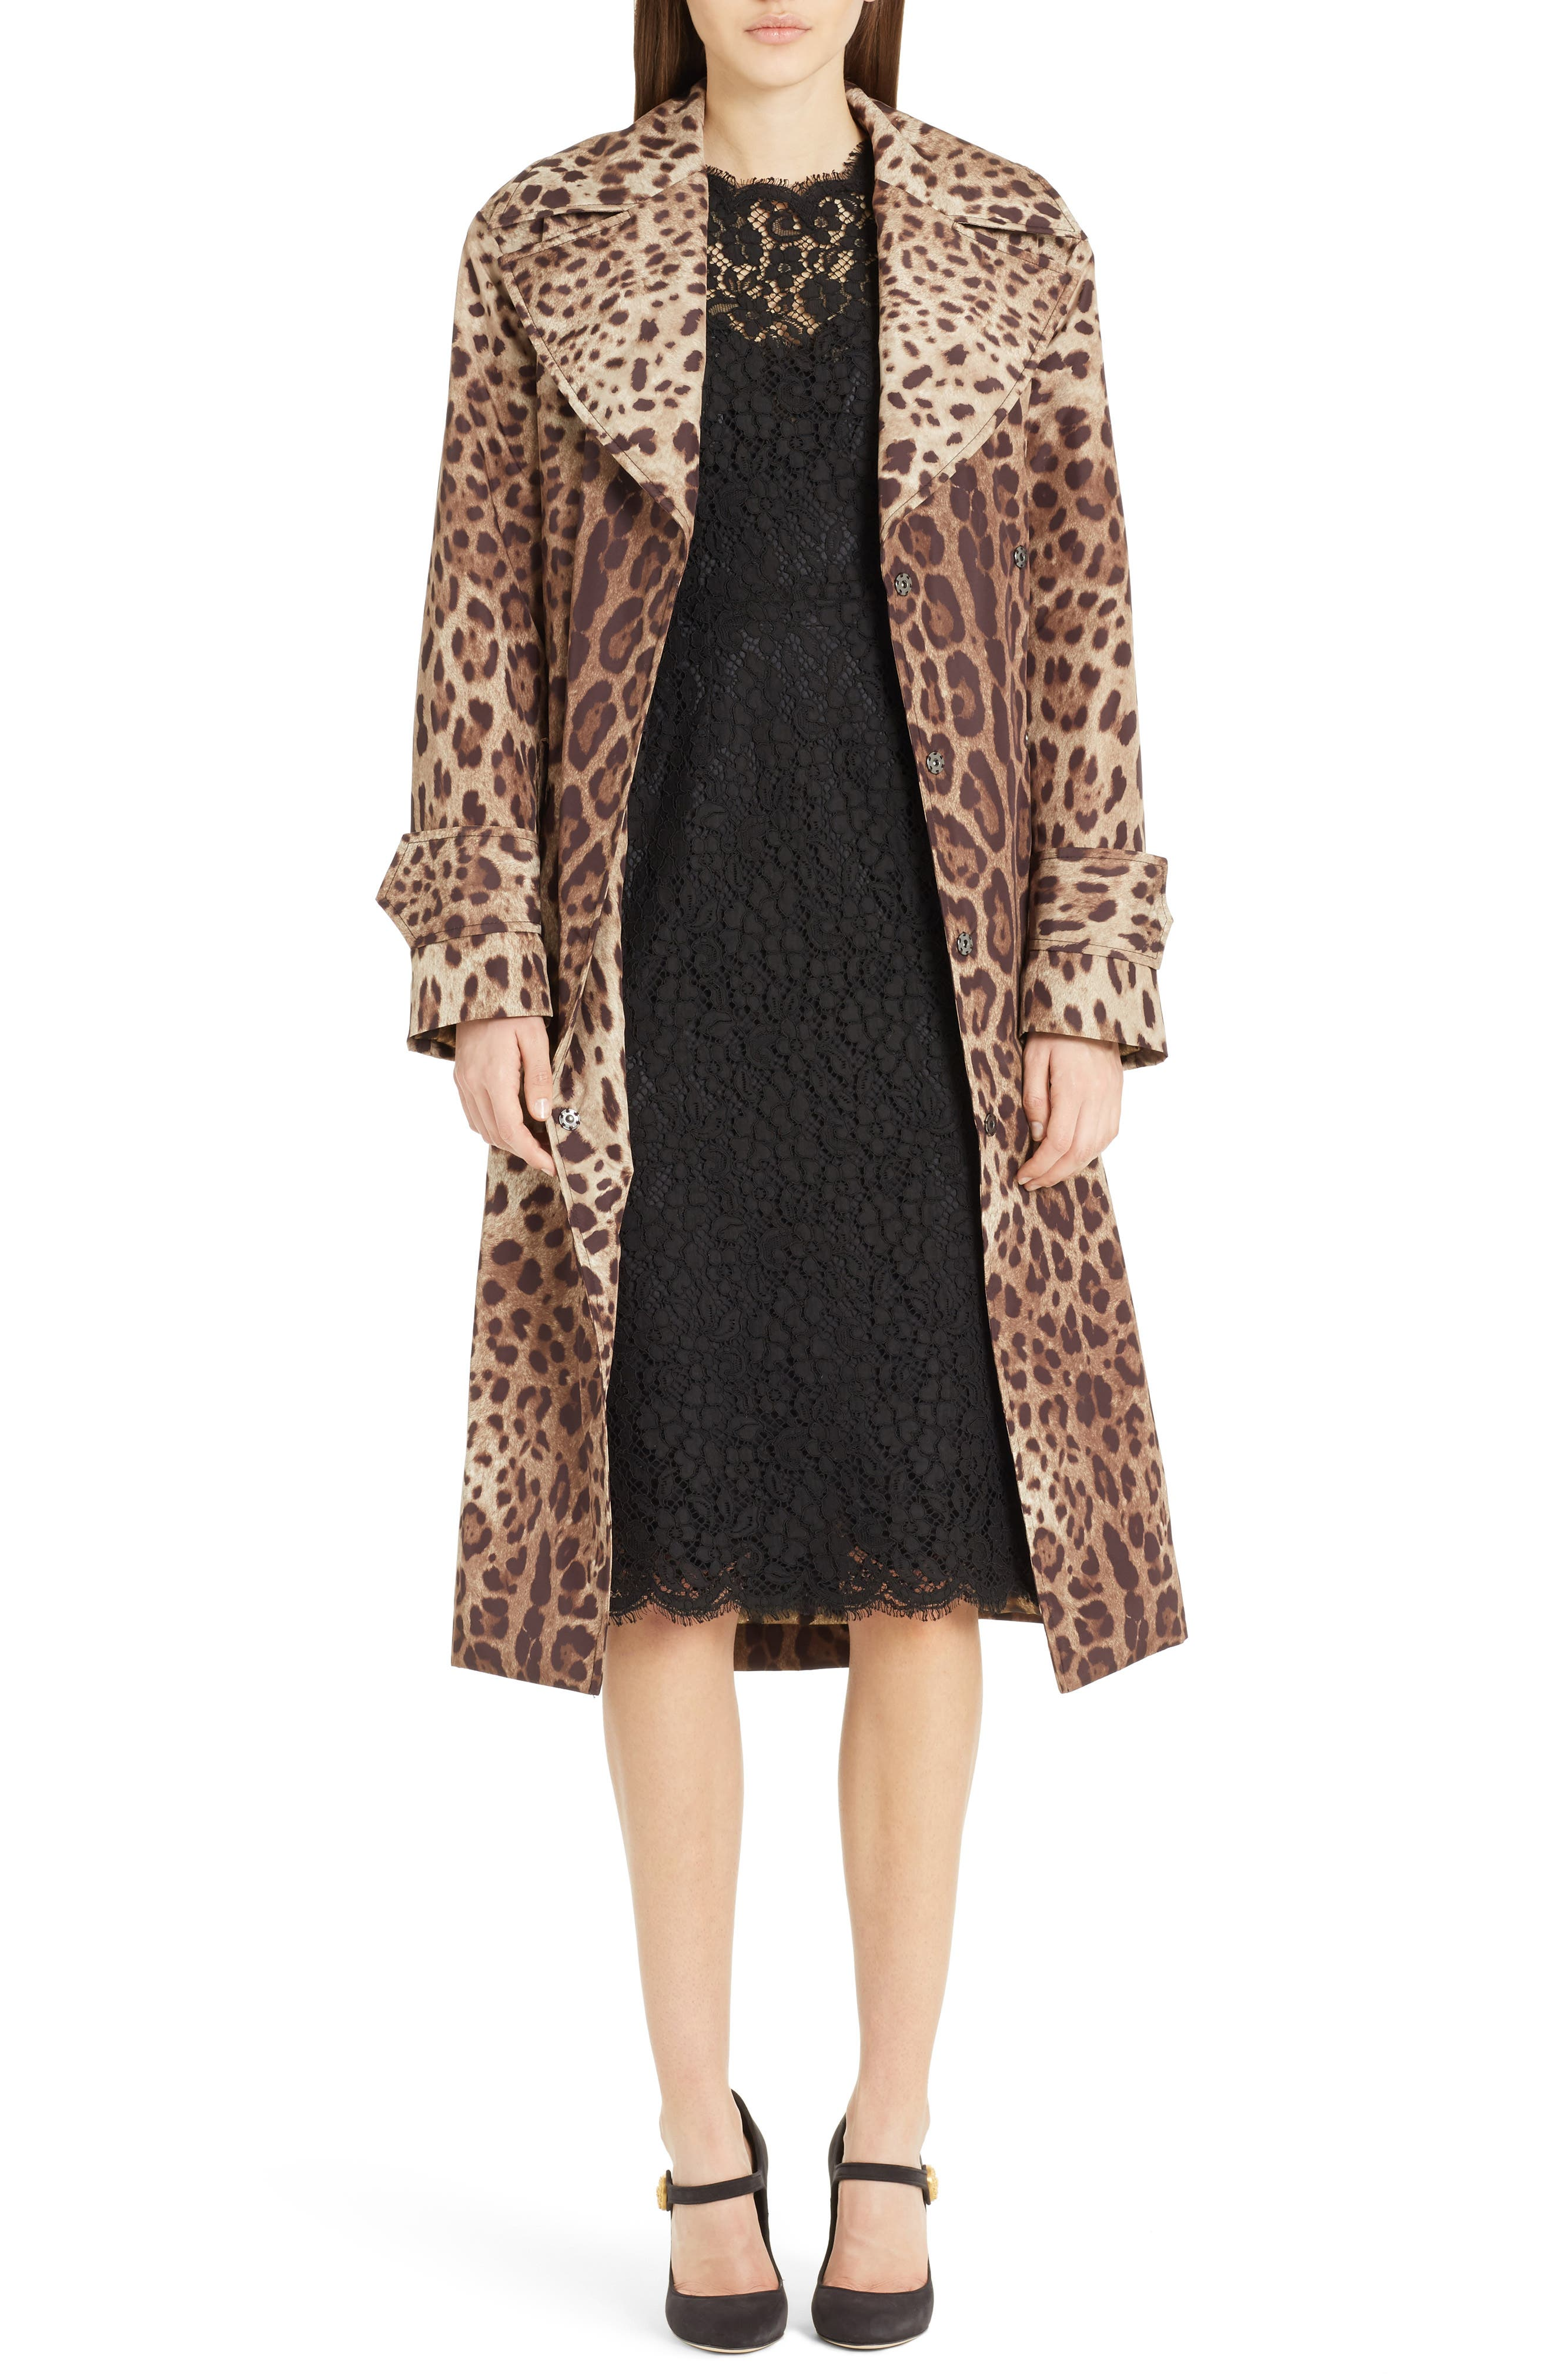 Dolce&Gabbana Leopard Print Trench Coat